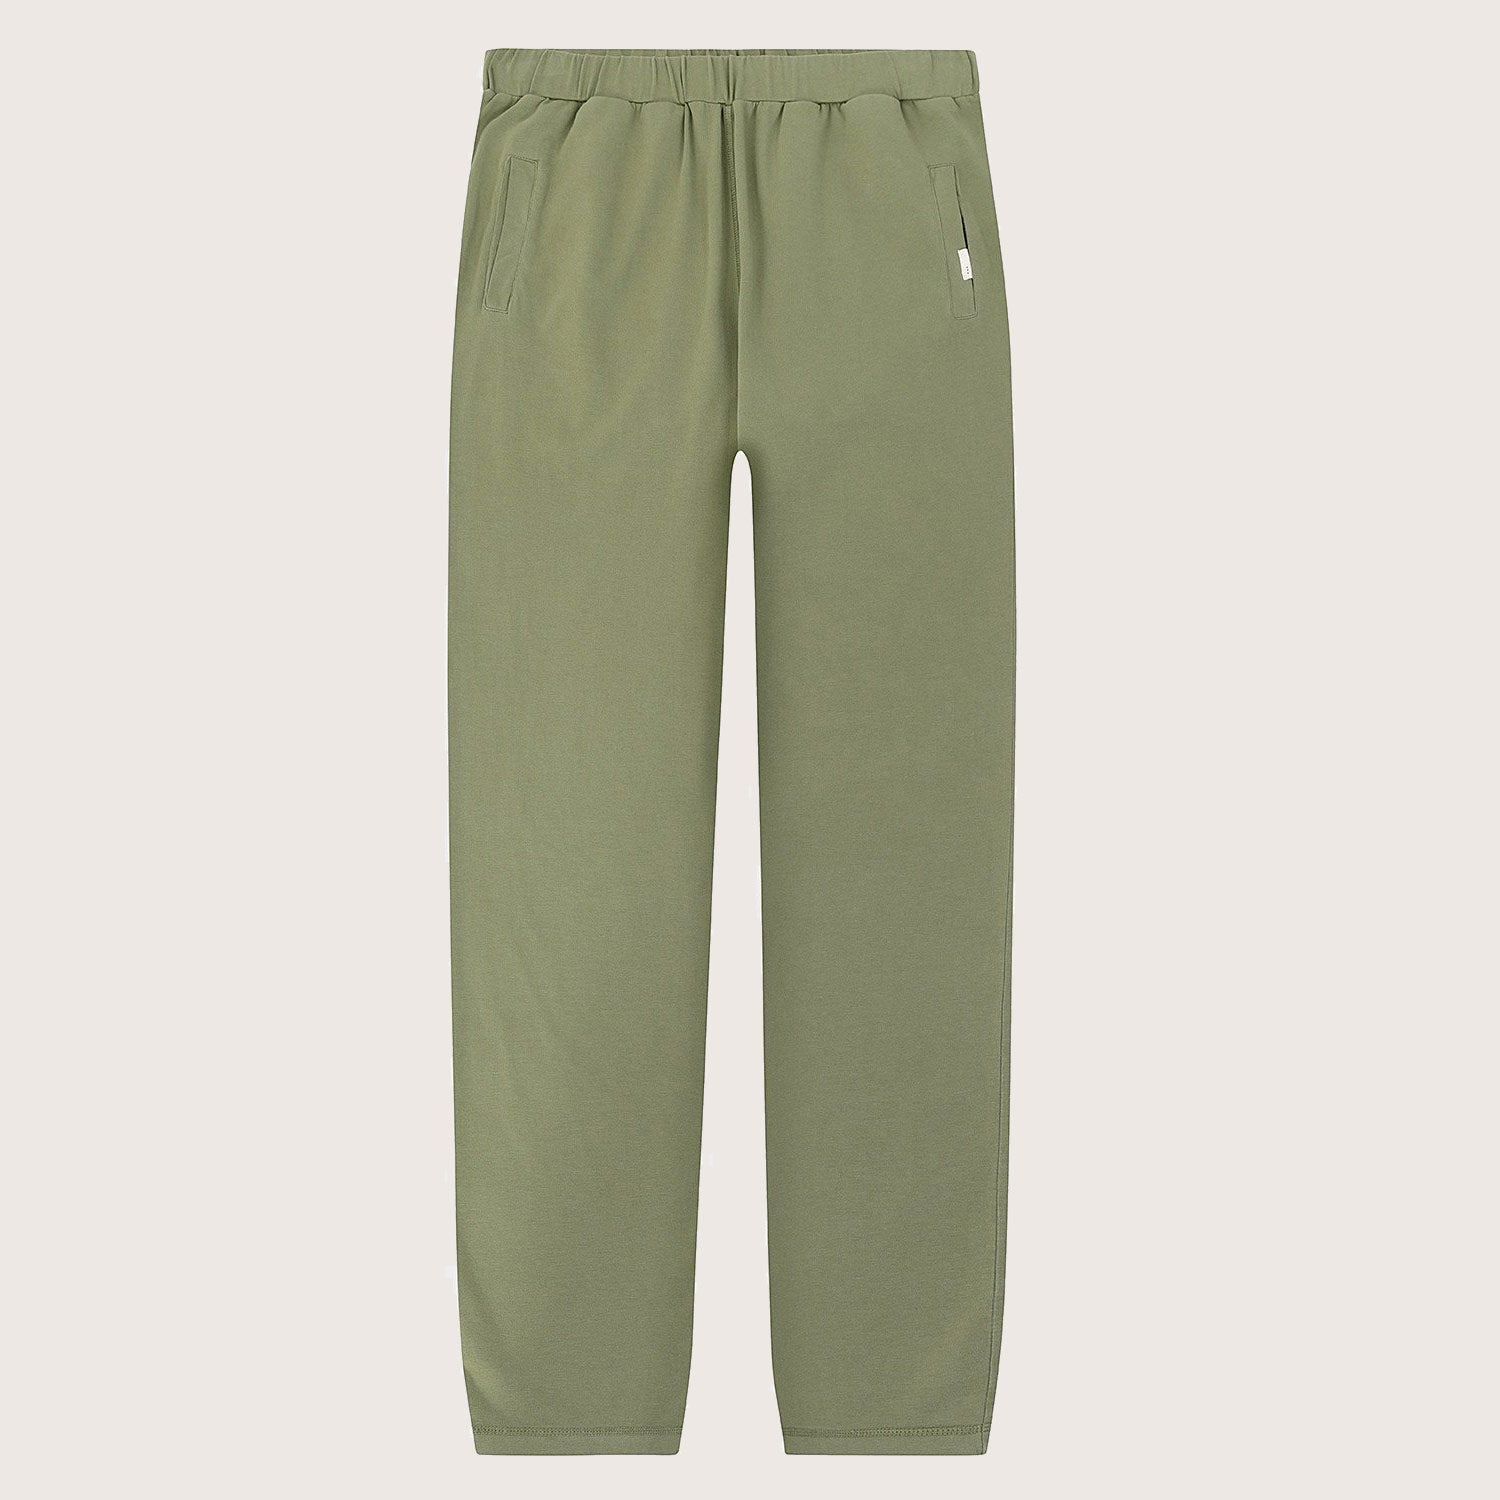 So We Flow... Jersey Yoga Pants in Olive